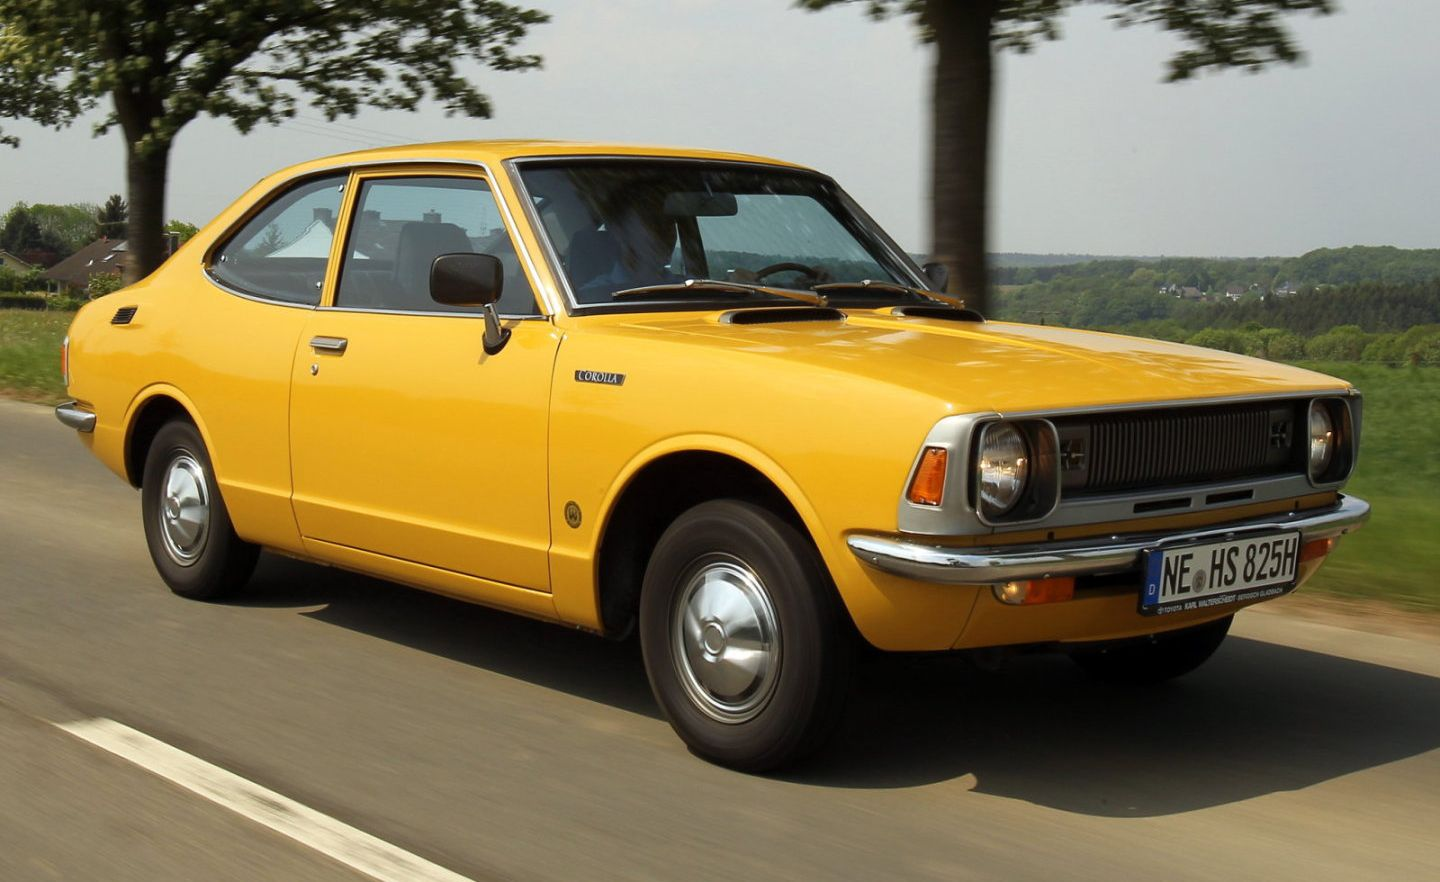 Toyota corolla fifth car owned it used to belong to my first wife s uncle had an eight track system with only one tape john denver the car eventually